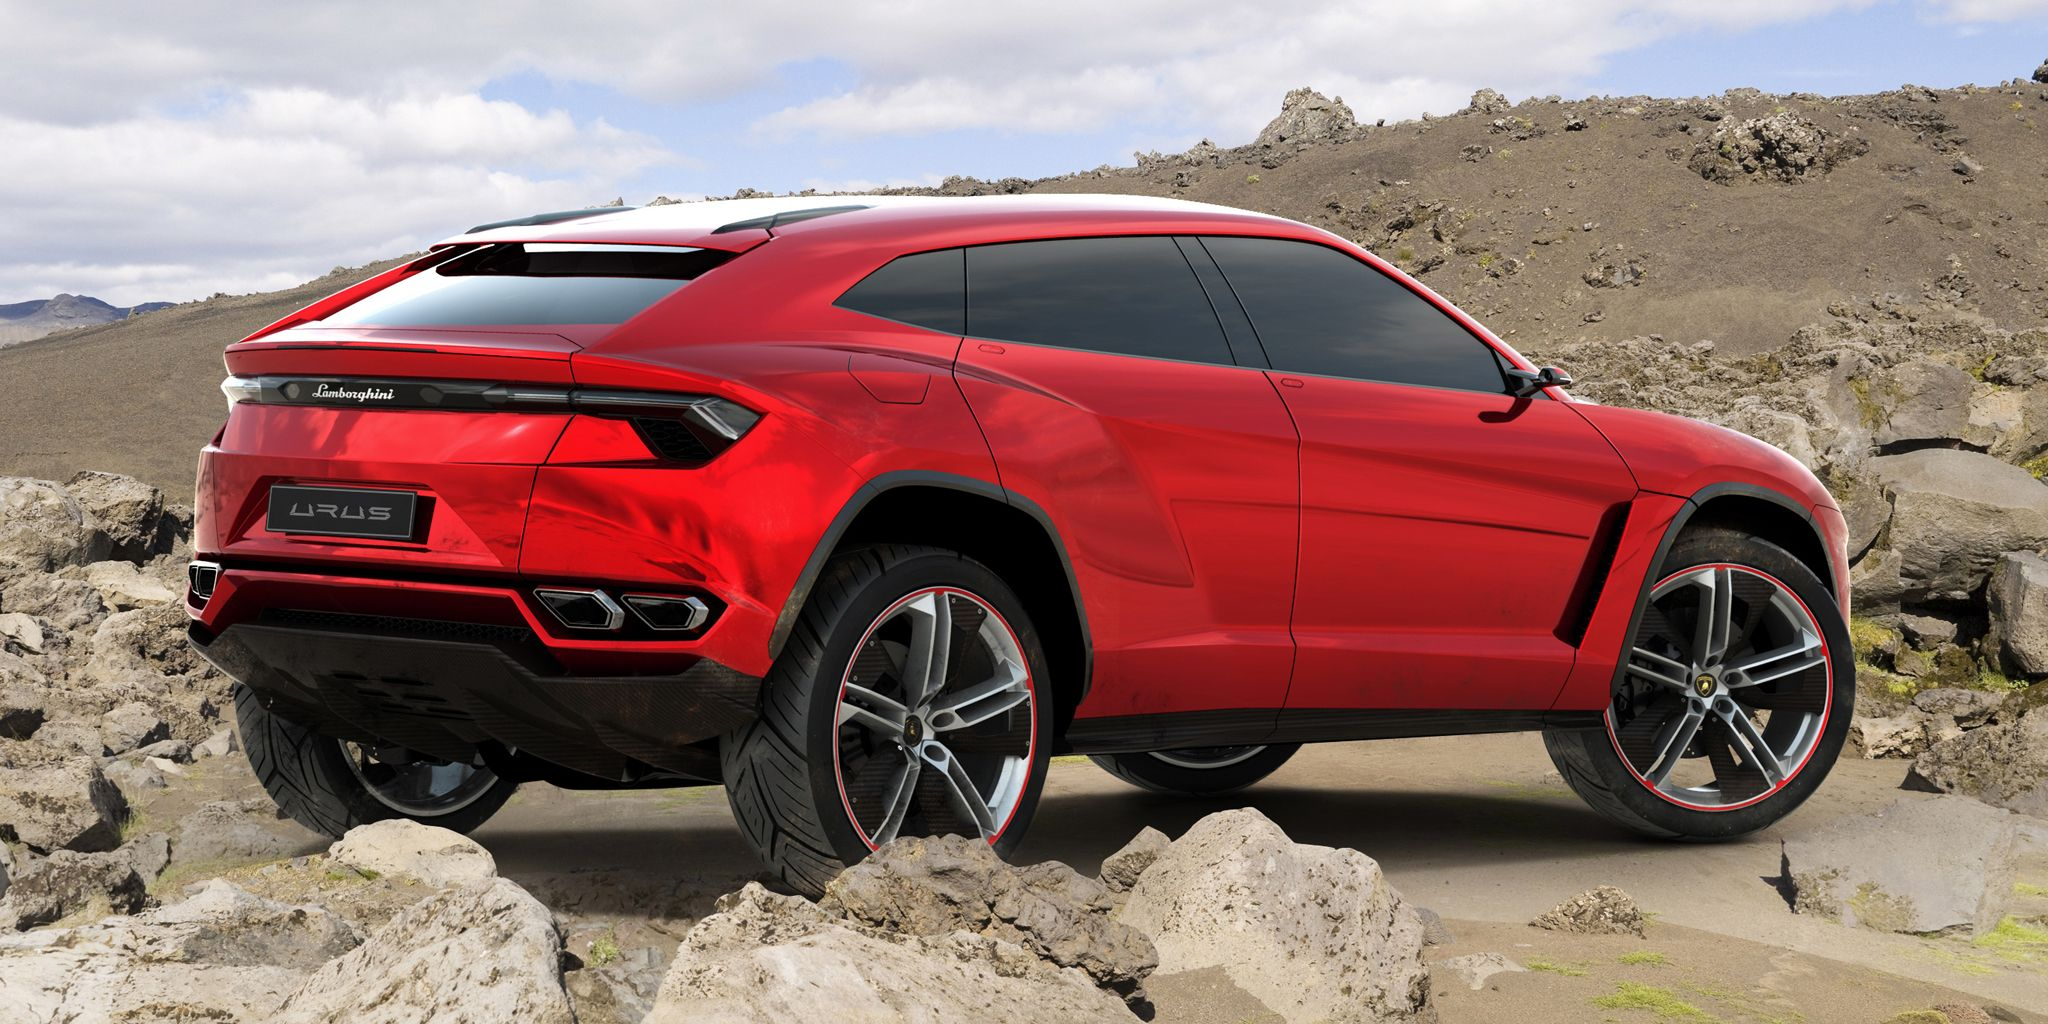 2019 lamborghini urus news, price, release date - everything we